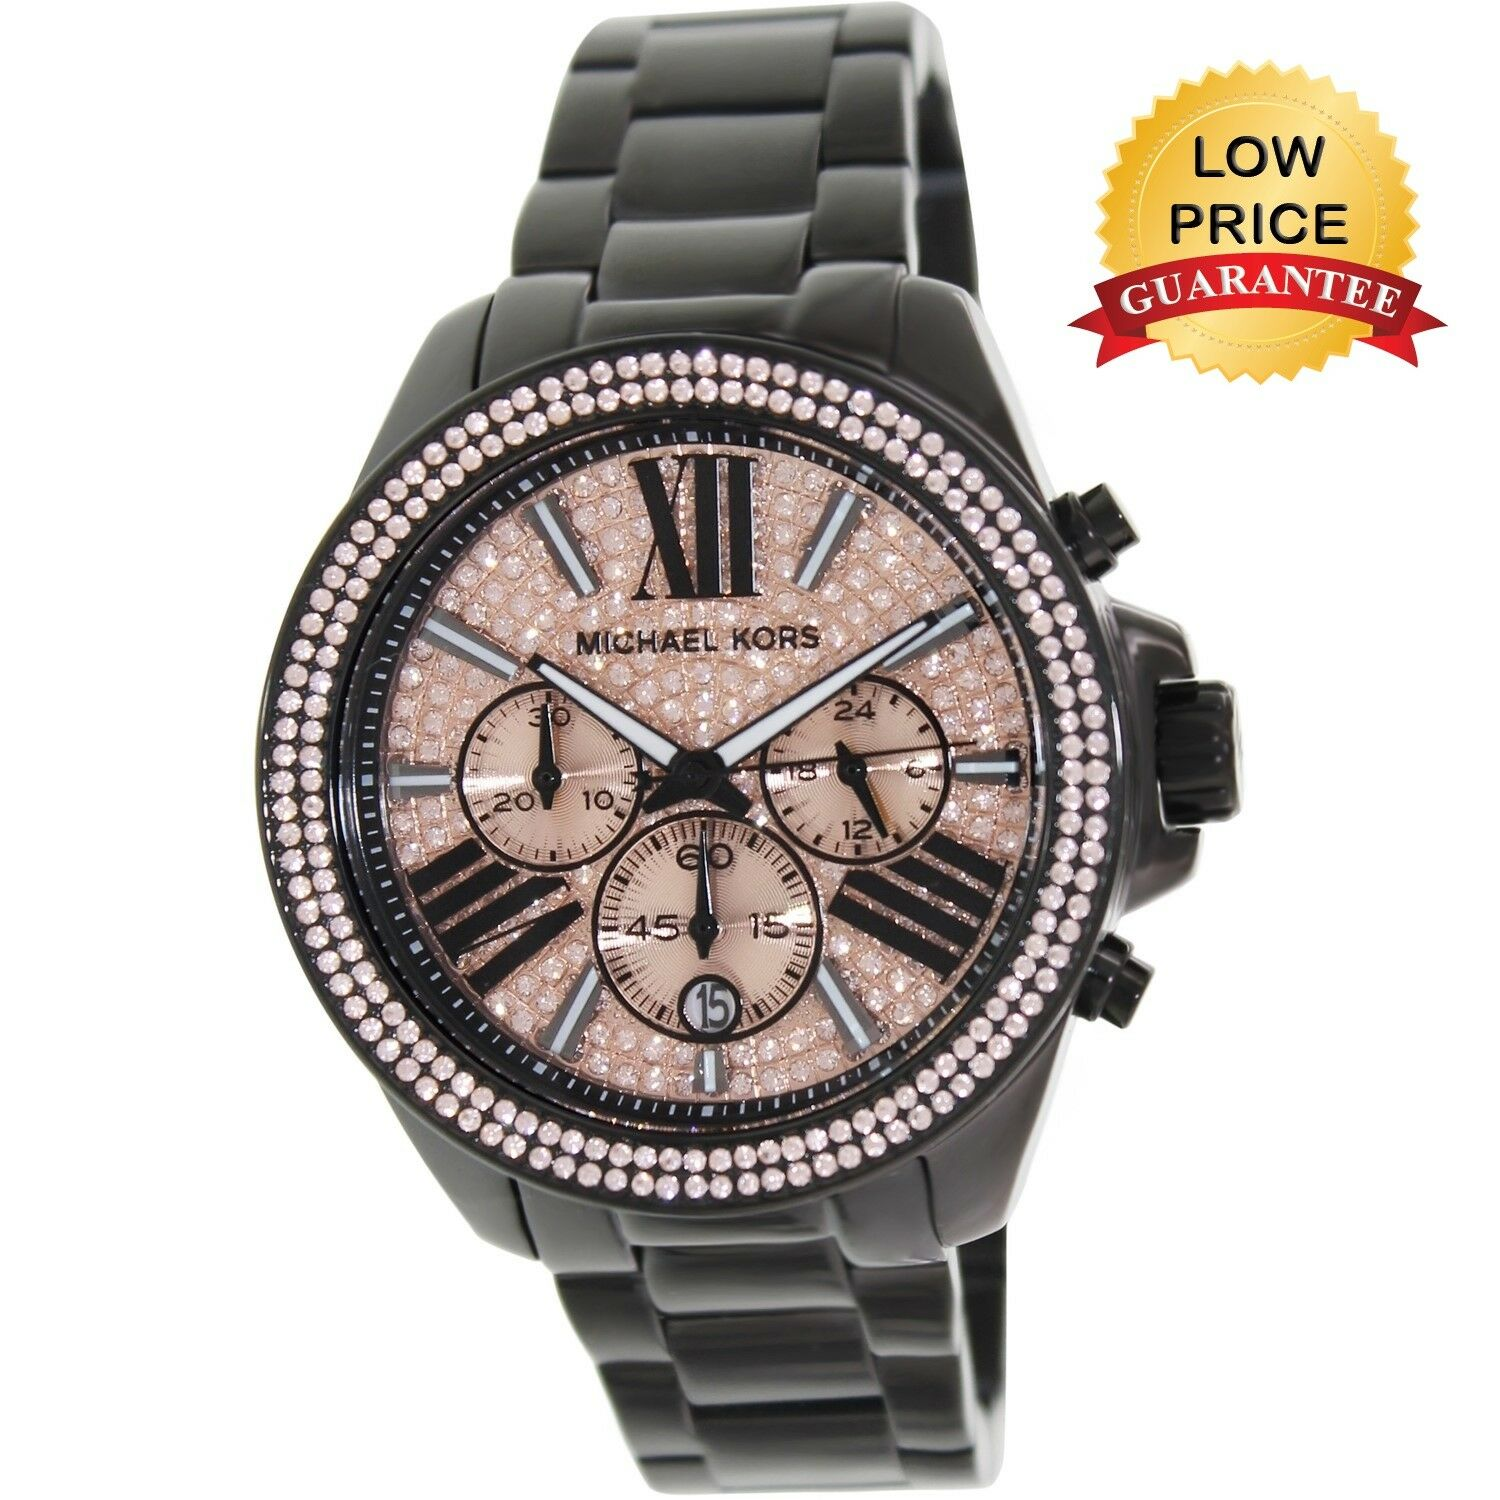 Michael Kors MK5879 Pave Chronograph Watch - Black for sale online ... 2ce5bf550534f